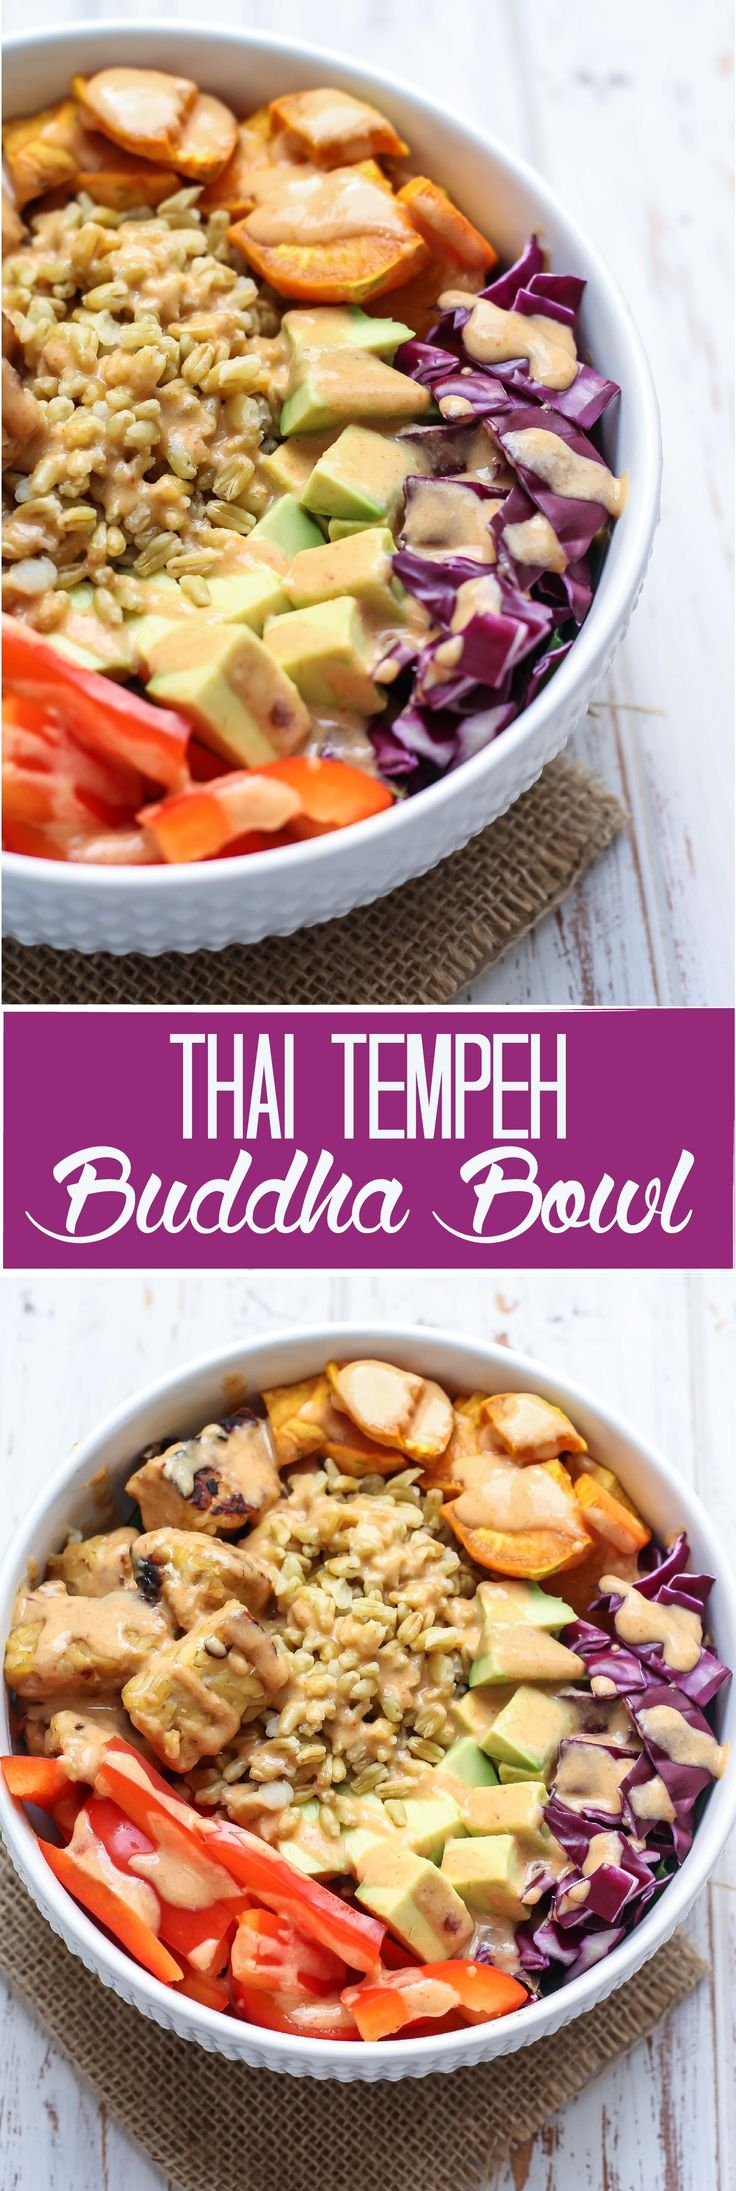 A super flavorful and seriously satisfying vegan Thai Tempeh Buddha Bowl, packed full with nutritious foods and drizzled with a simple cashew curry sauce, this meal comes together in just 30 minutes. 20 grams of plant-based protein and 16 grams of fiber!